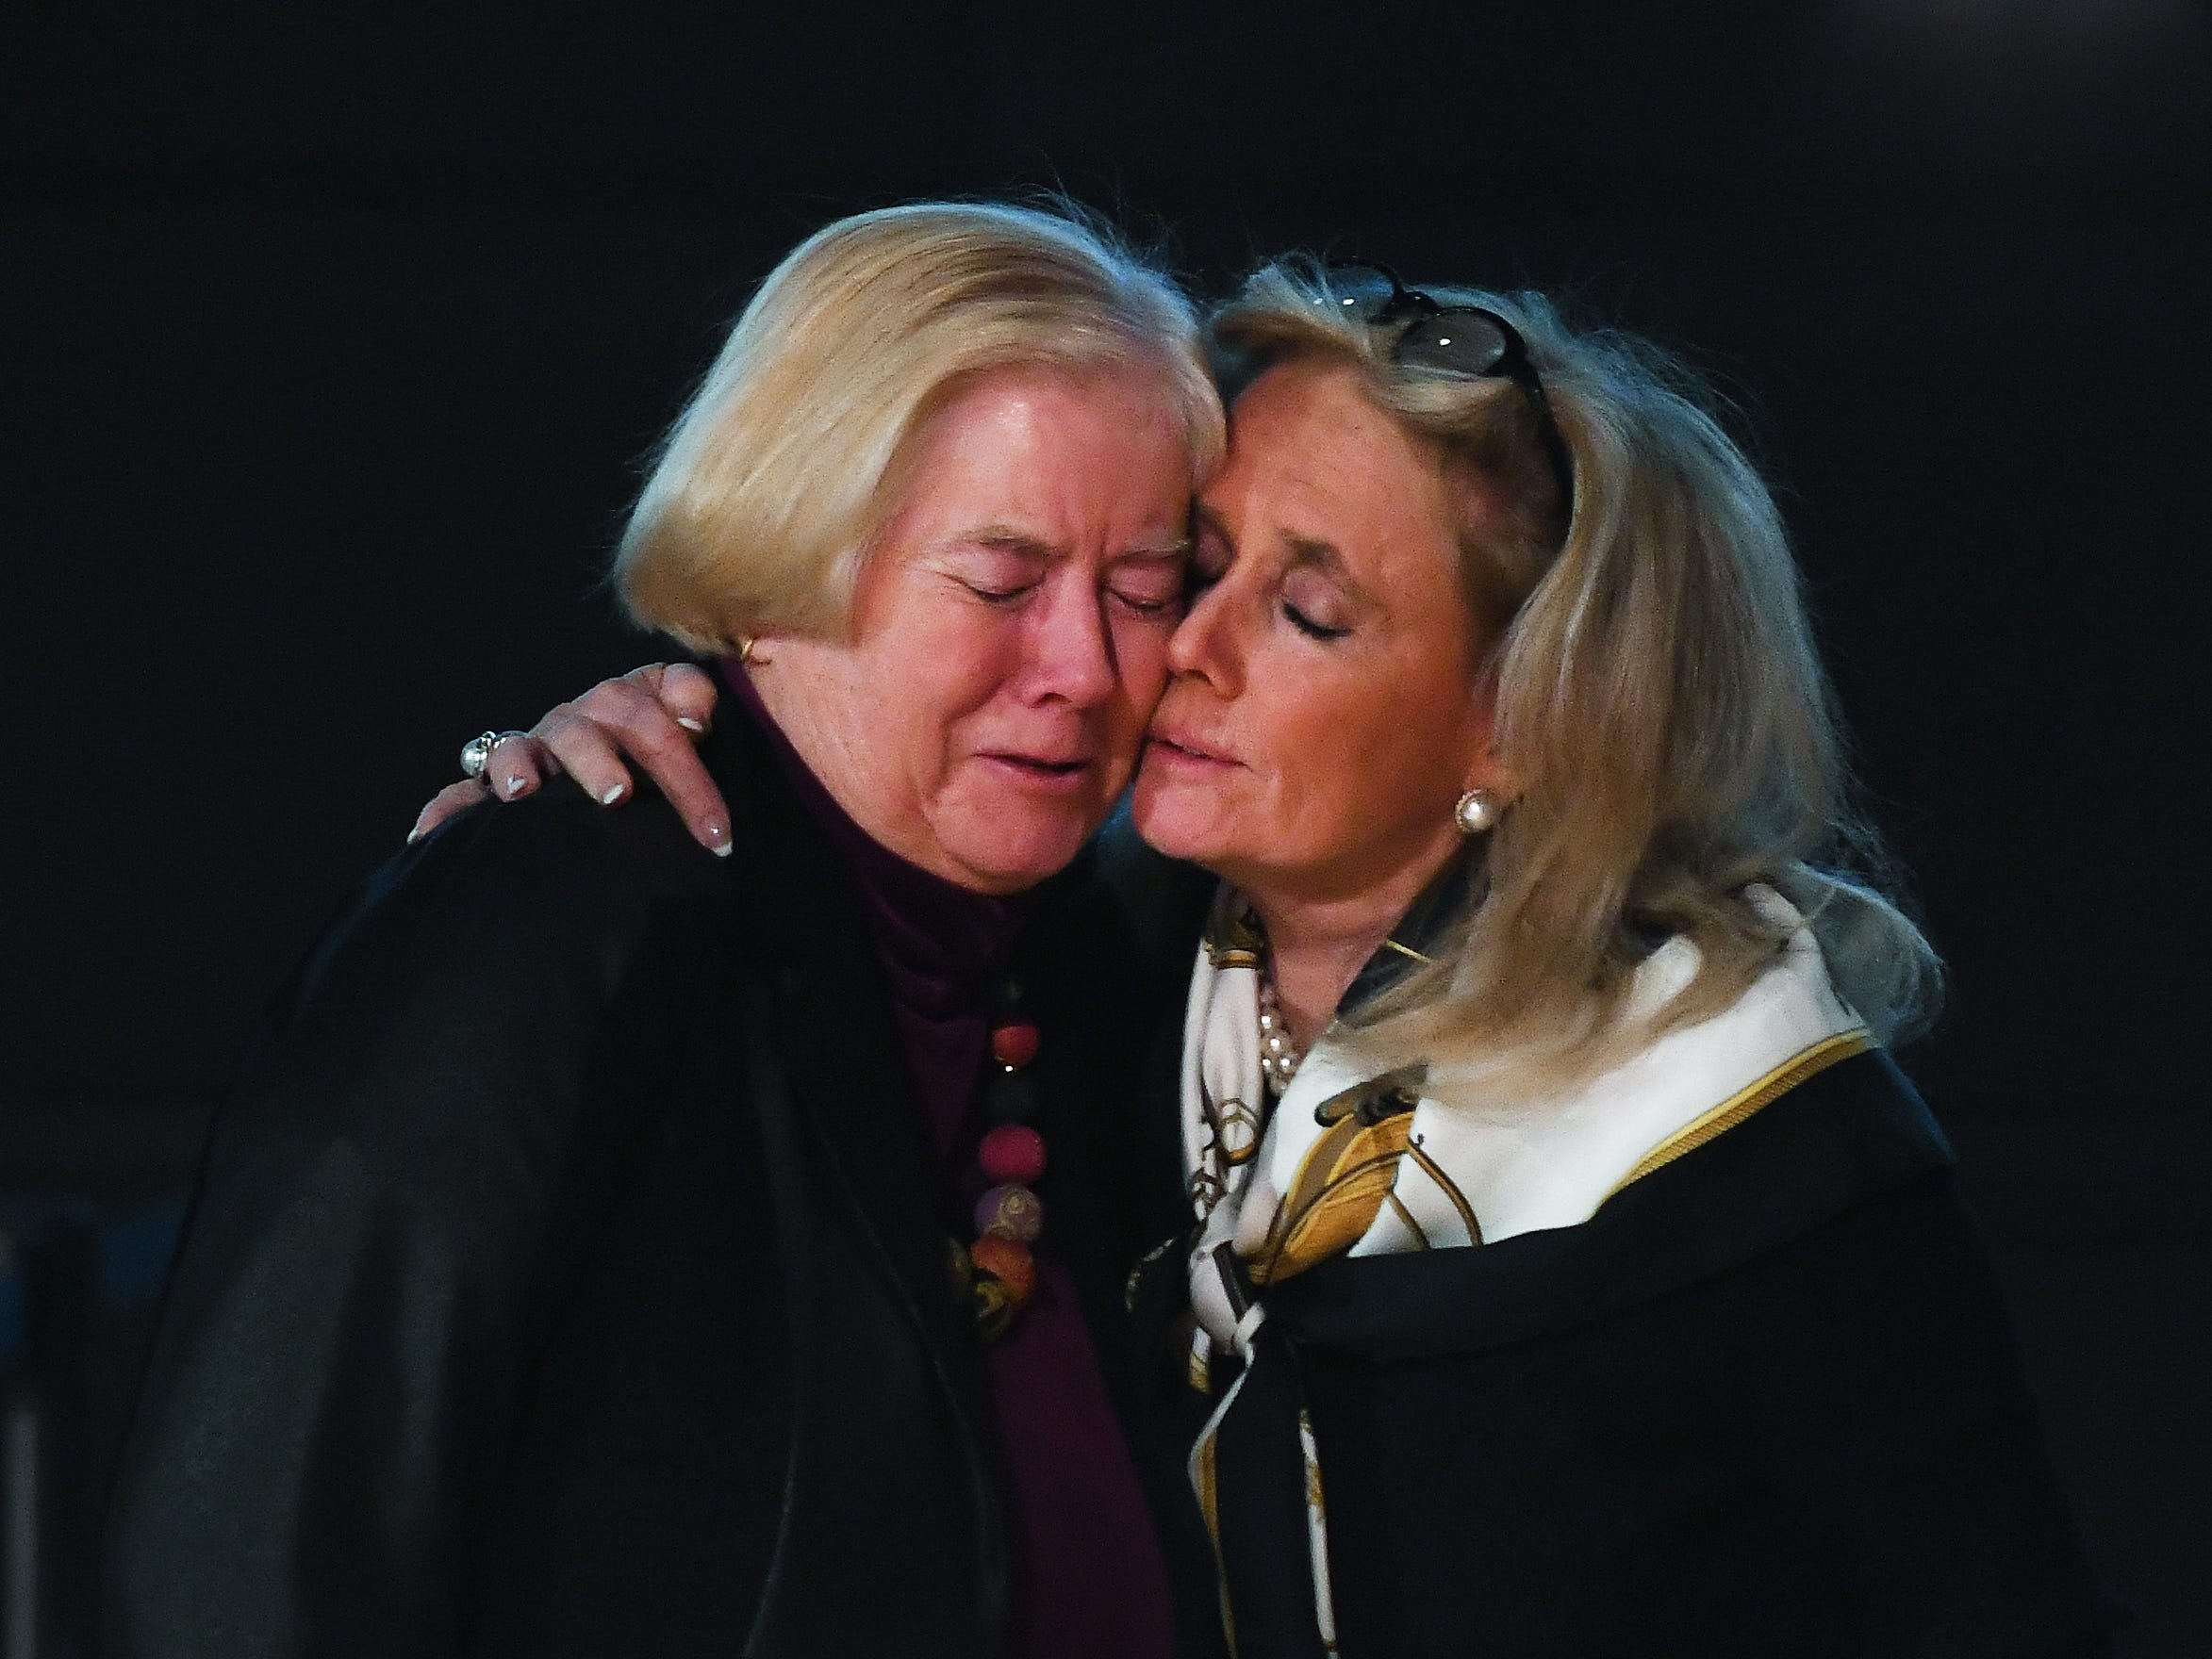 Former U.S. Rep. Candice Miller, now Macomb County public works commissioner, is hugged by U.S. Rep.  Debbie Dingell at the start of the public viewing.